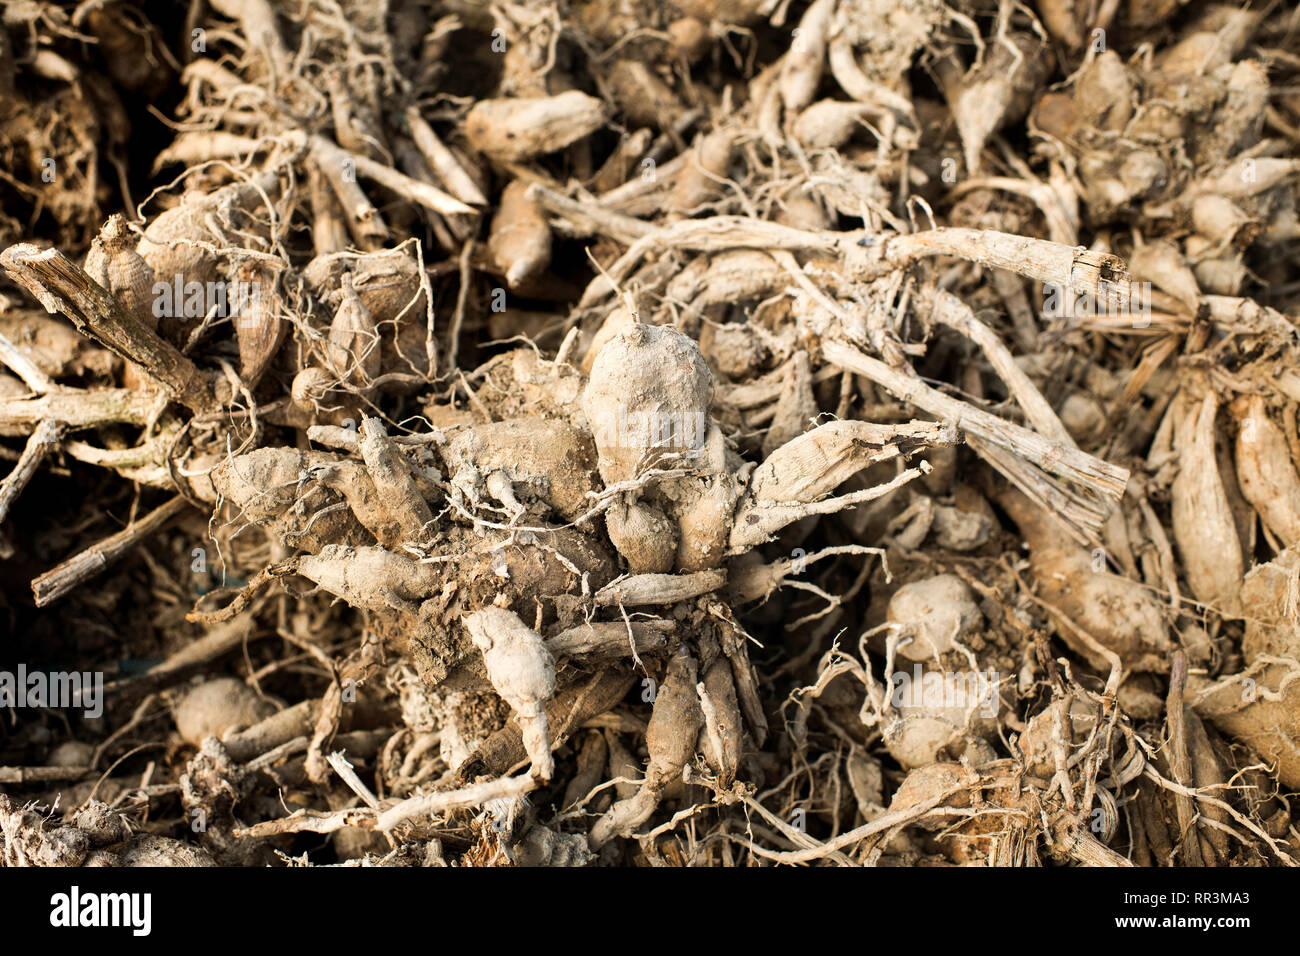 Background texture of dahlia bulbs waiting to be transplant in spring on a flower farm or nursery in a close up full frame view - Stock Image